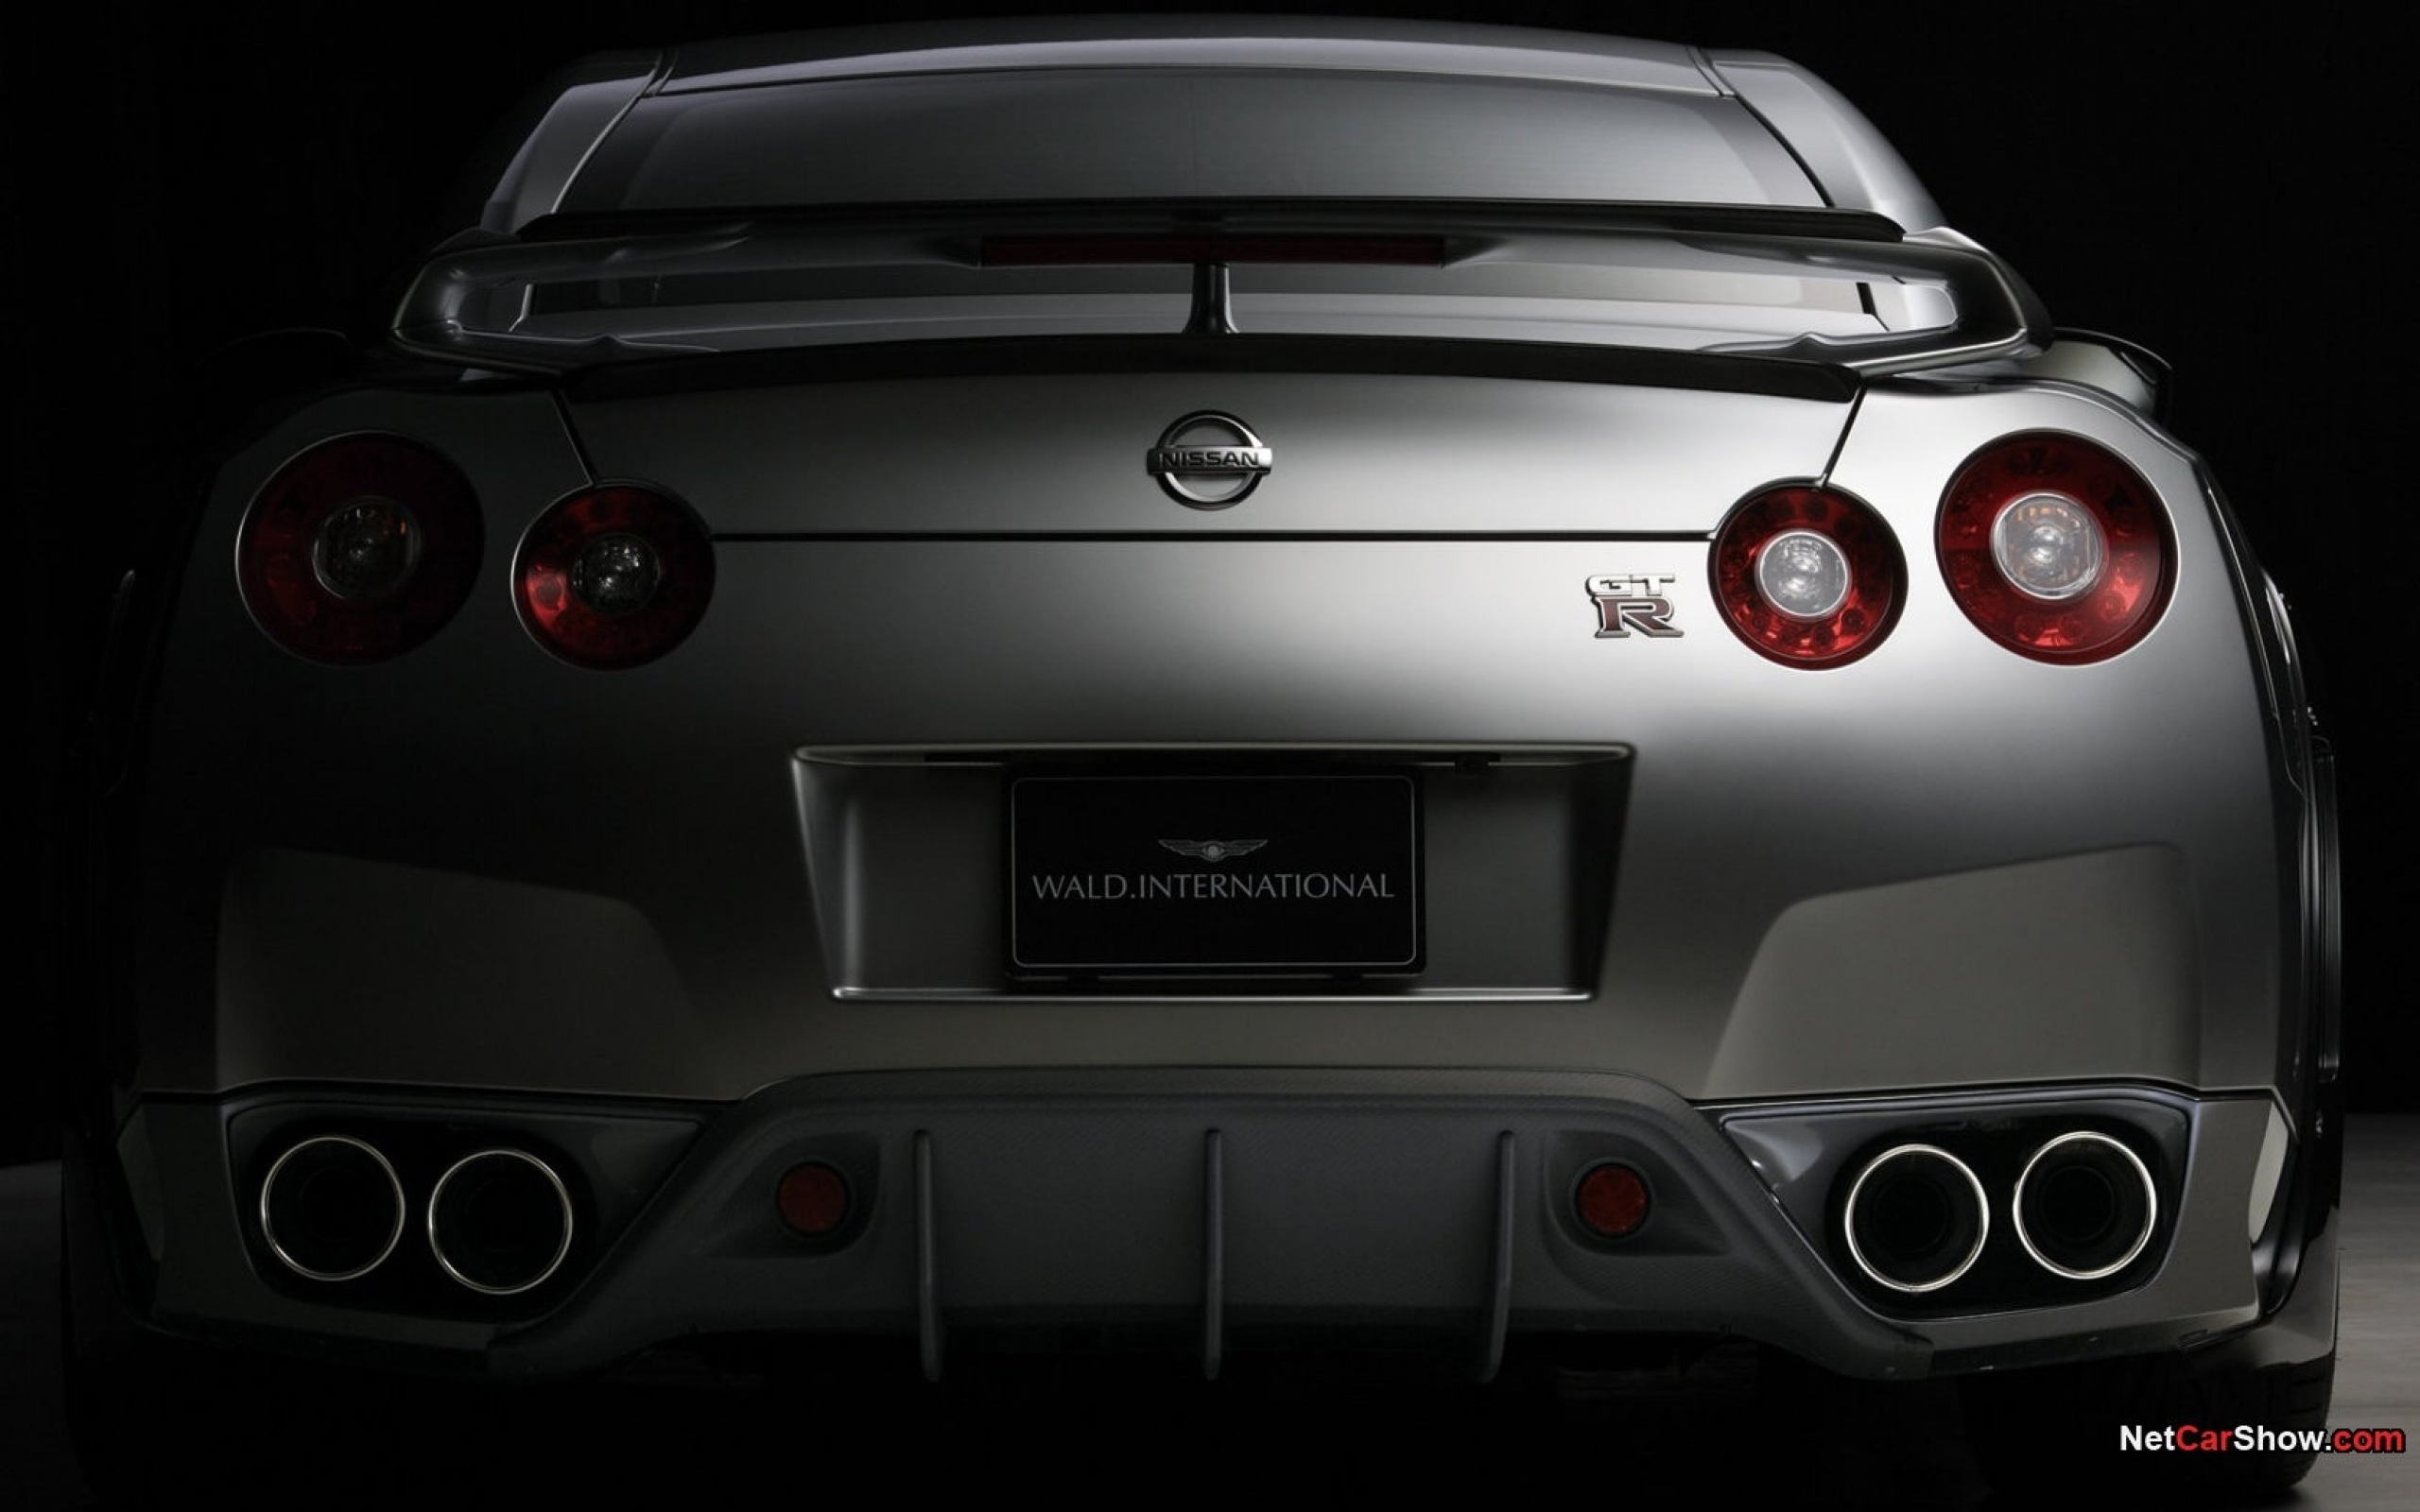 Gtr Logo Wallpaper Wallpapersafari